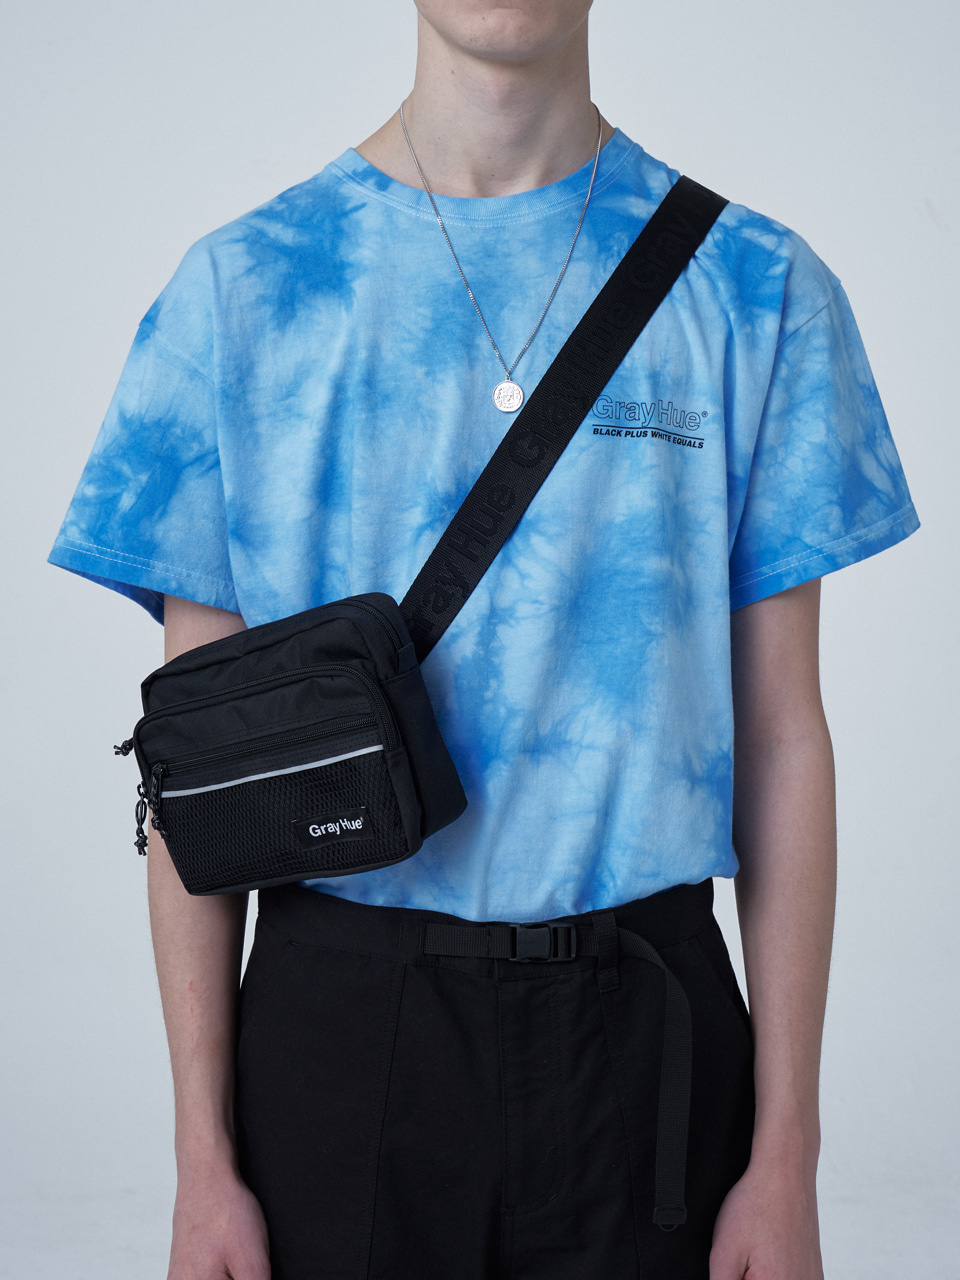 그레이휴RECTANGLE WAIST BAG black